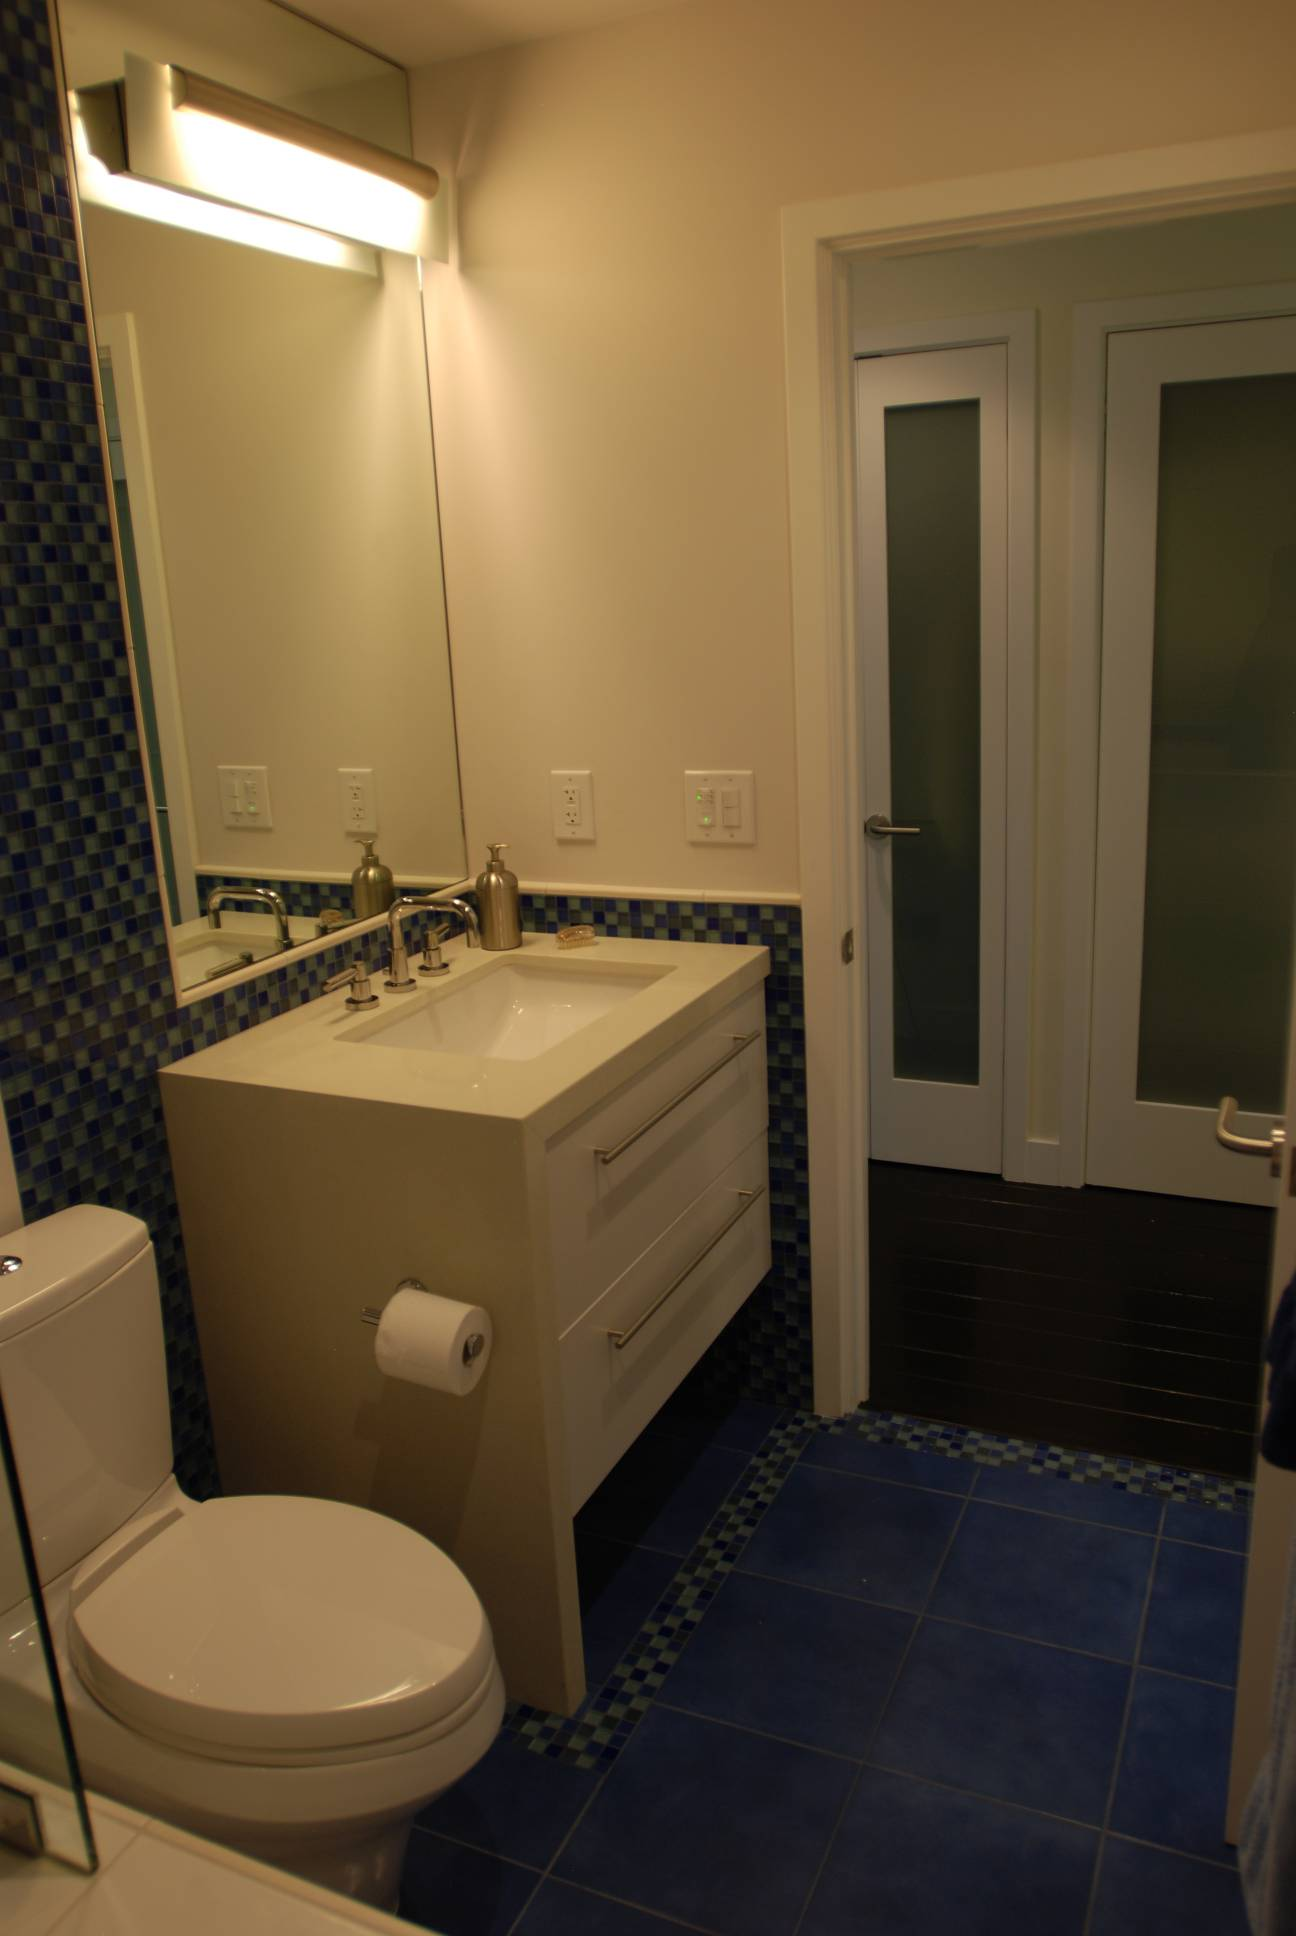 White and Blue Tile Bathroom, Splendid Architect design, interior design work, Menlo Park